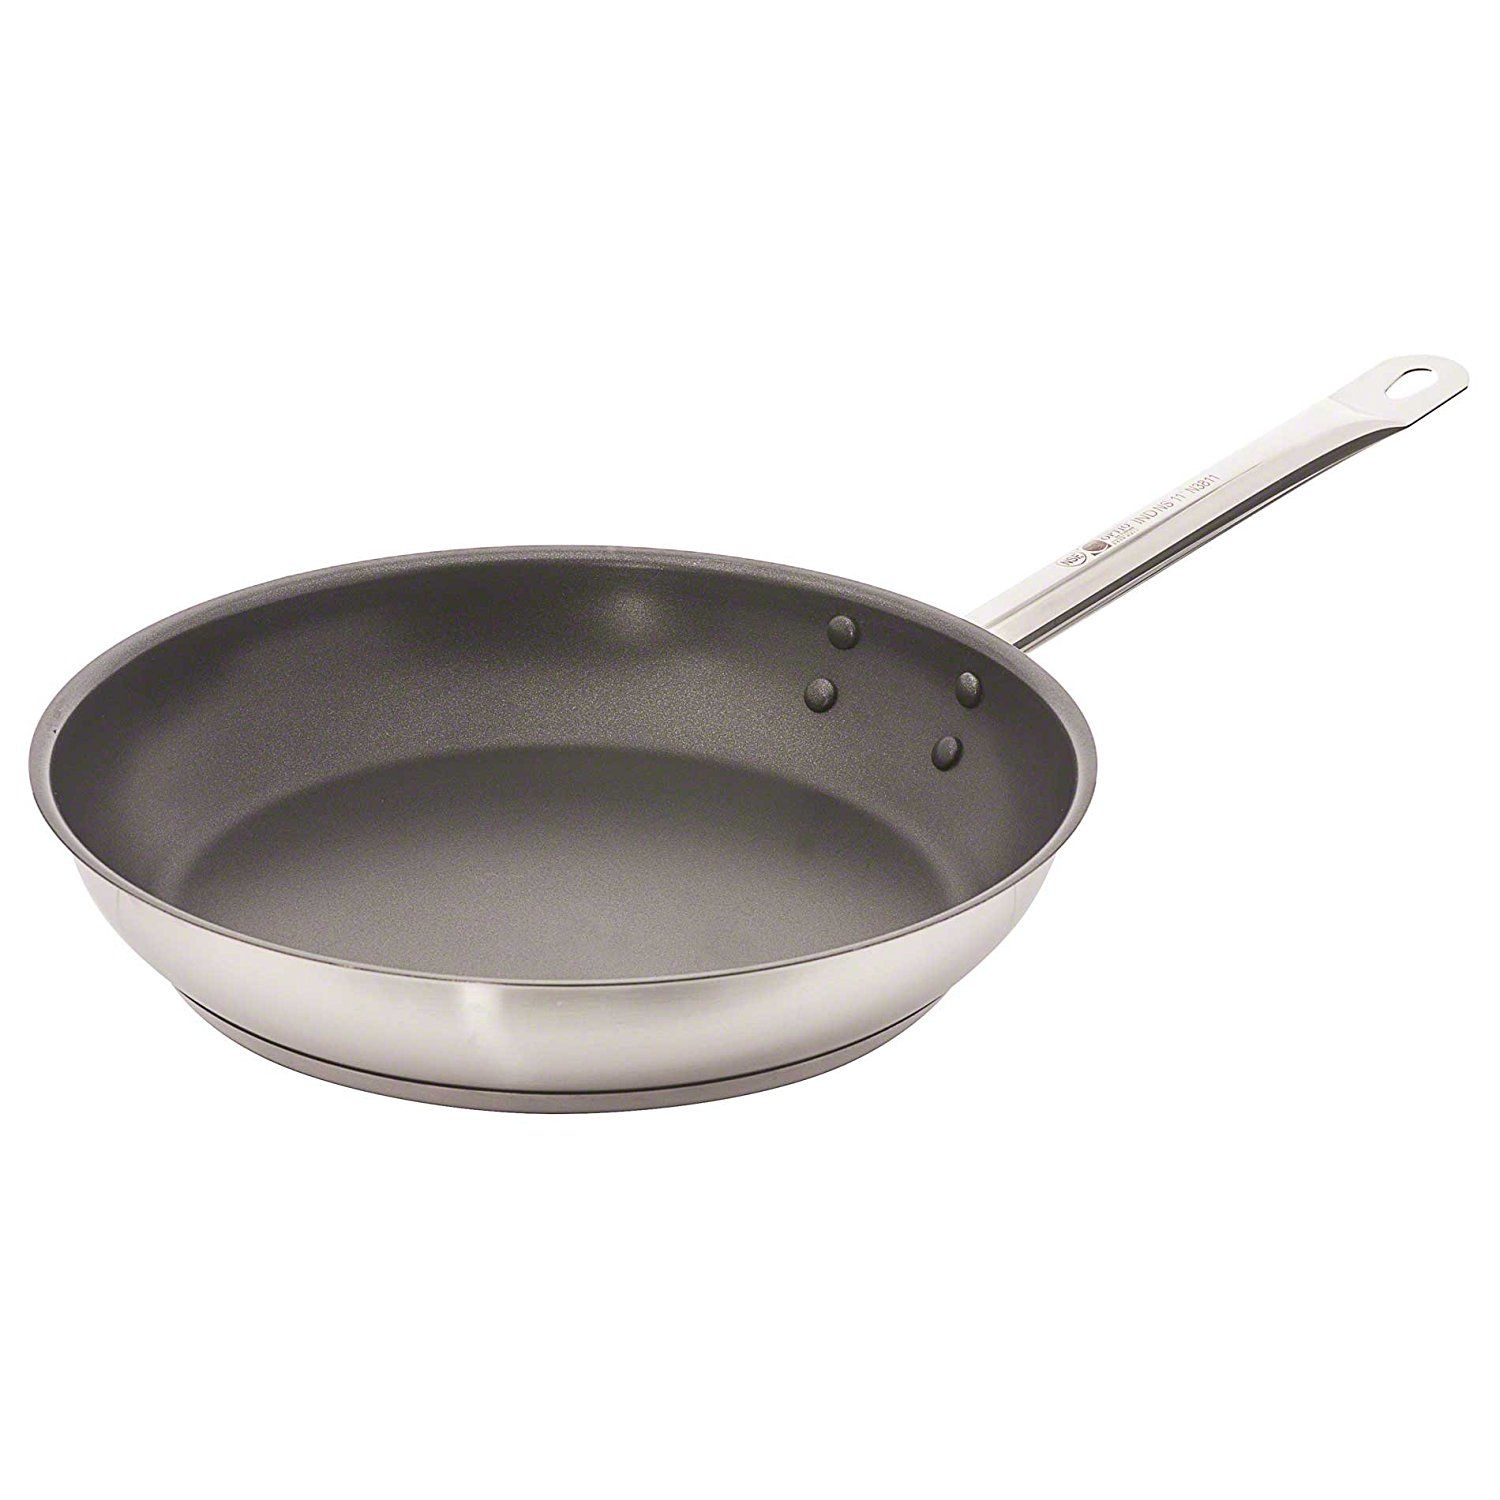 Cookware gt see more select by calphalon ceramic nonstick 8 inch an - Matfer Fry Pan 8 Inch Nonstick You Can Find More Details Here Skillets And Fry Pans Skillets And Fry Pans Pinterest Skillets Products And